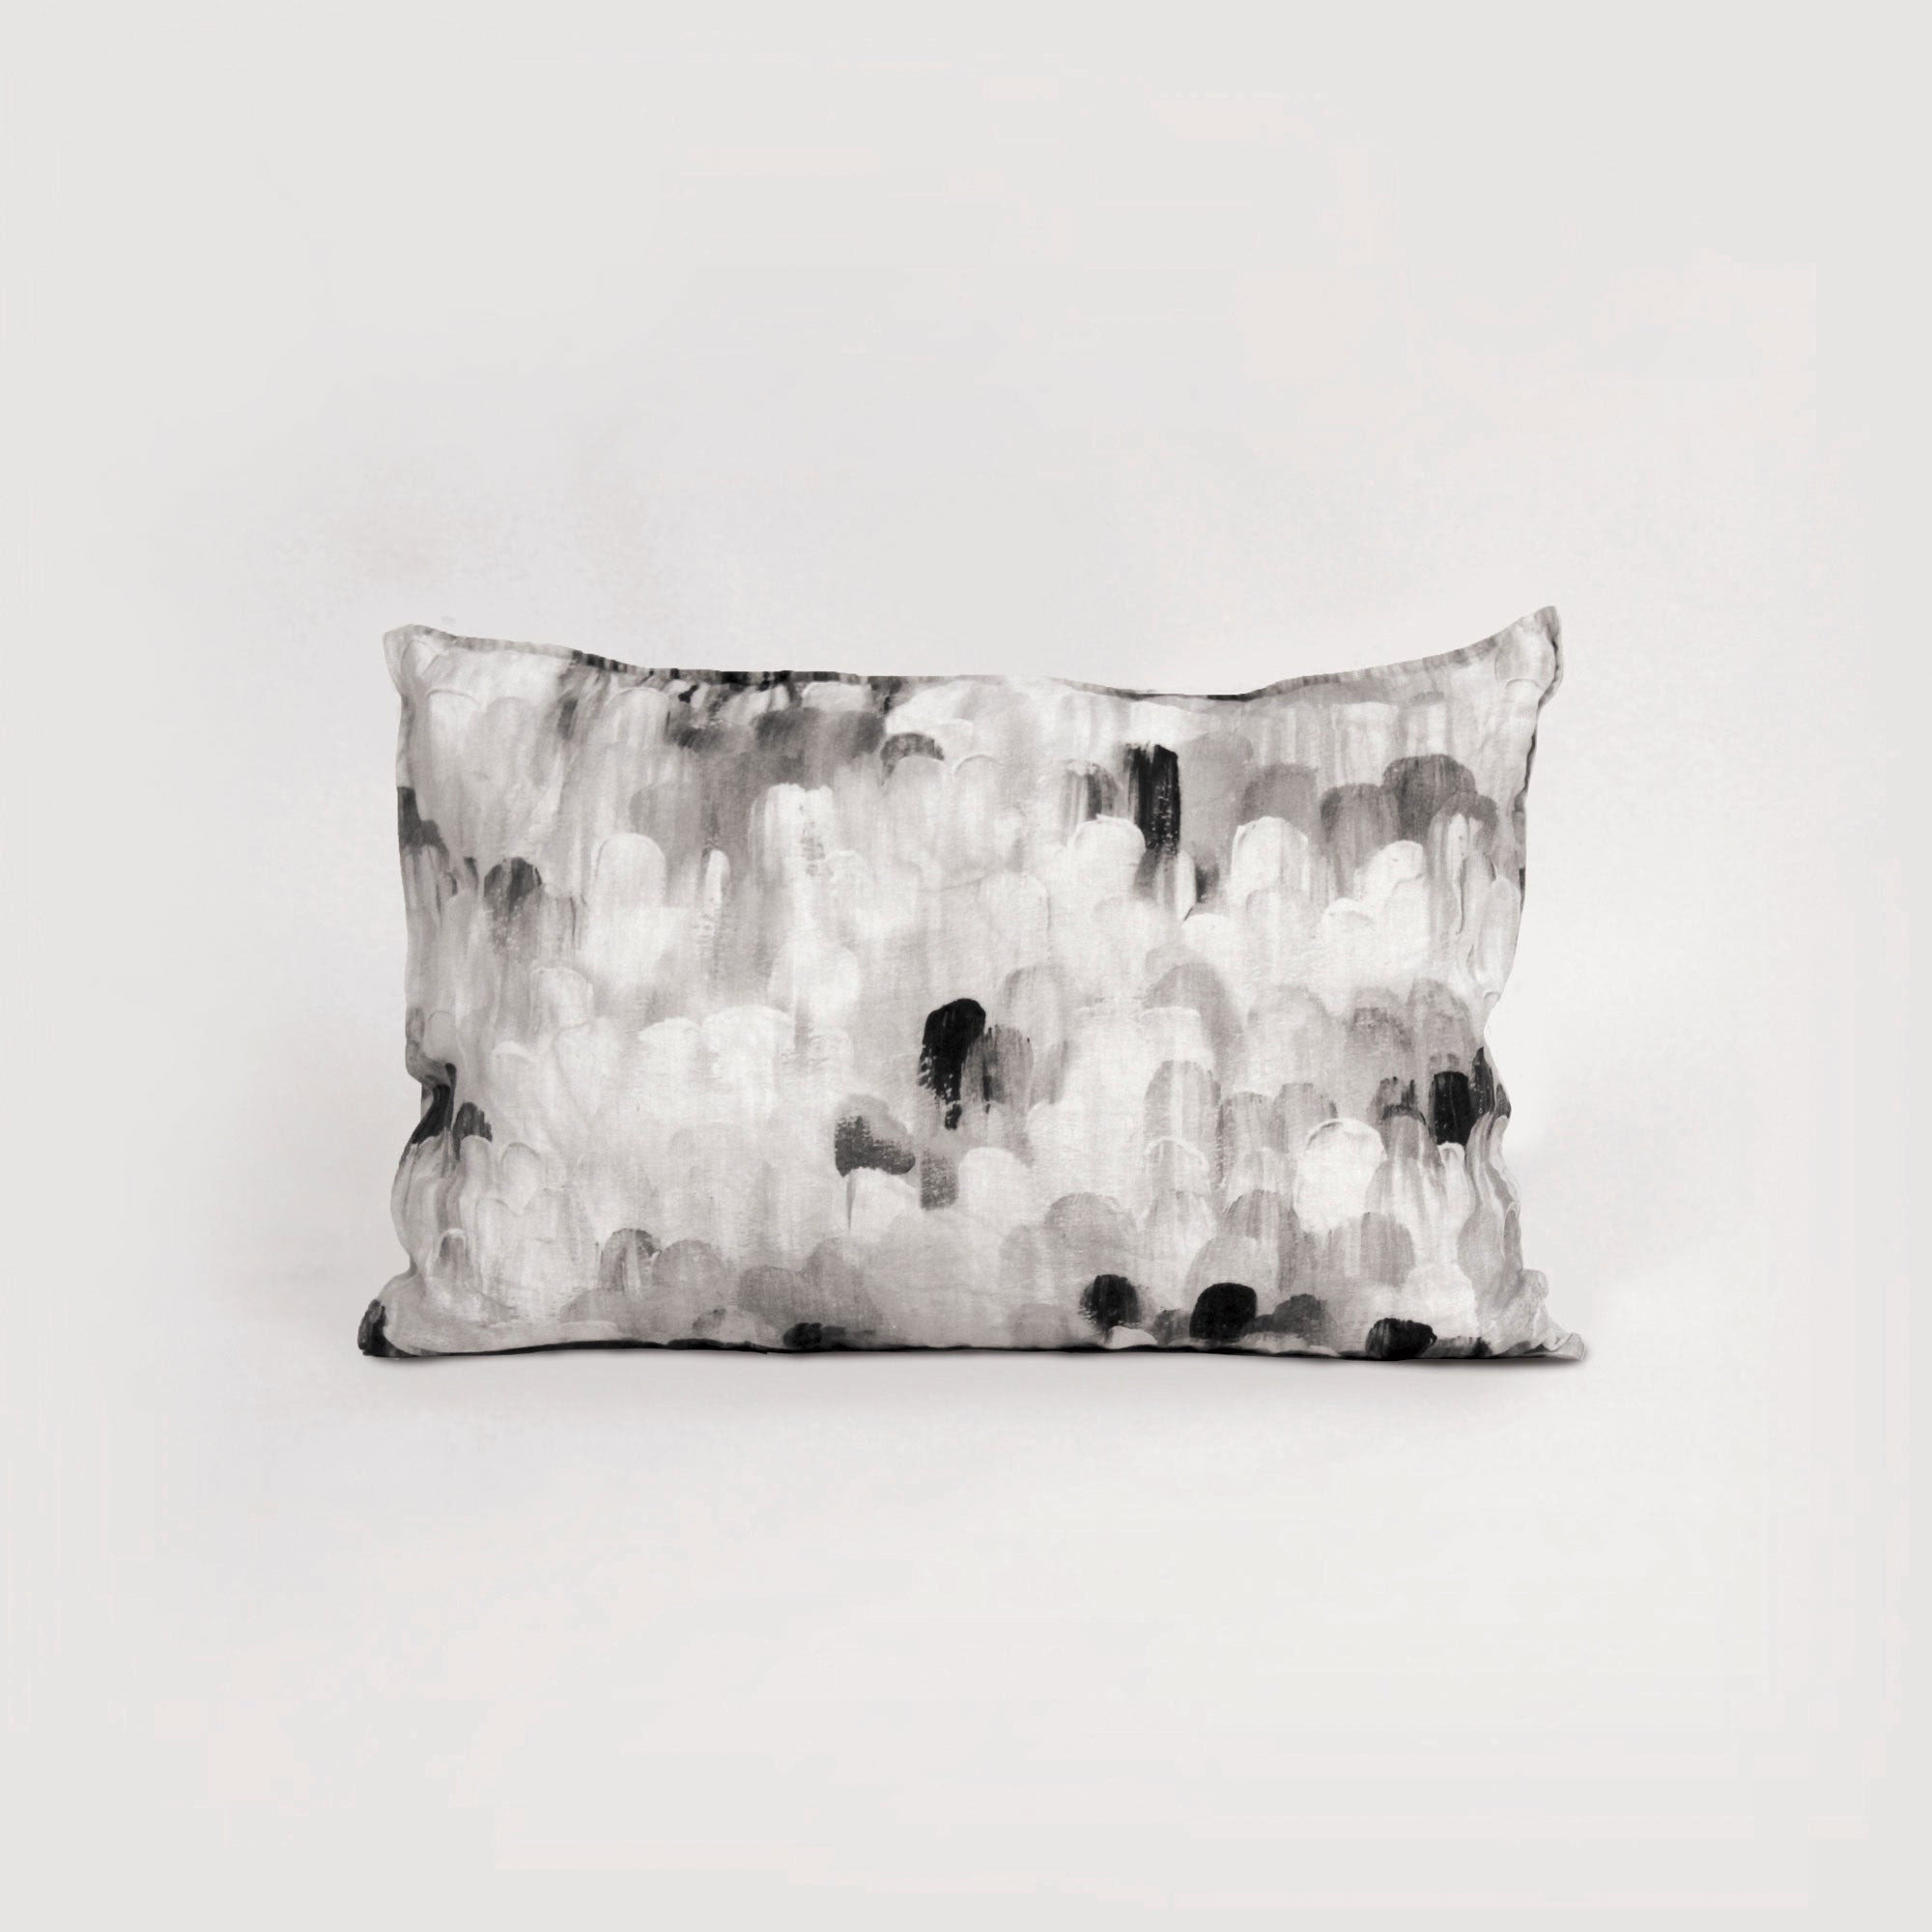 black, white and grey printed linen pillowcase by homebody nz